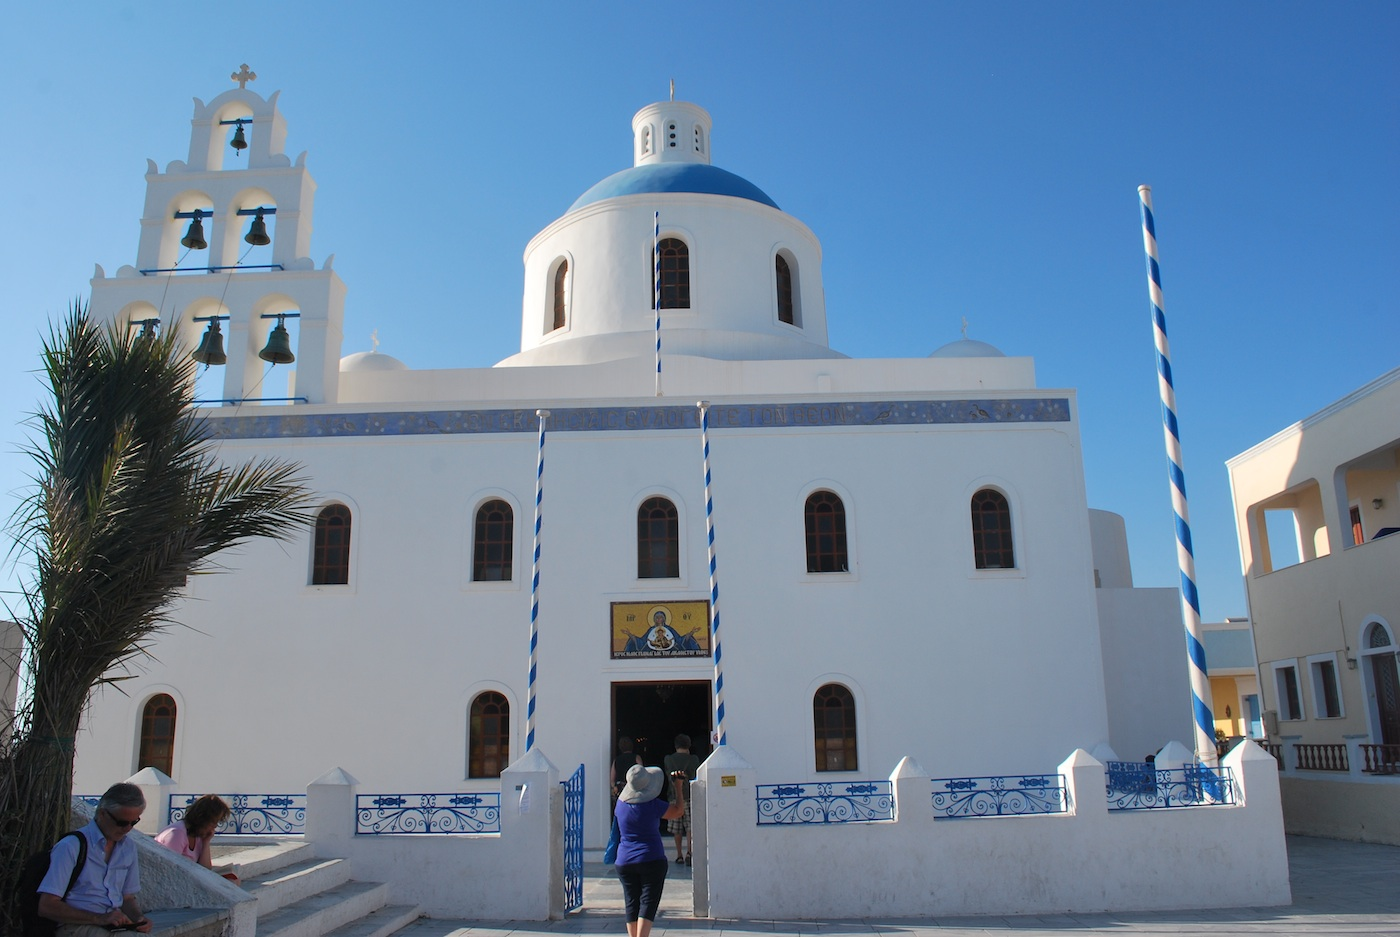 Santorini - Church in Oia